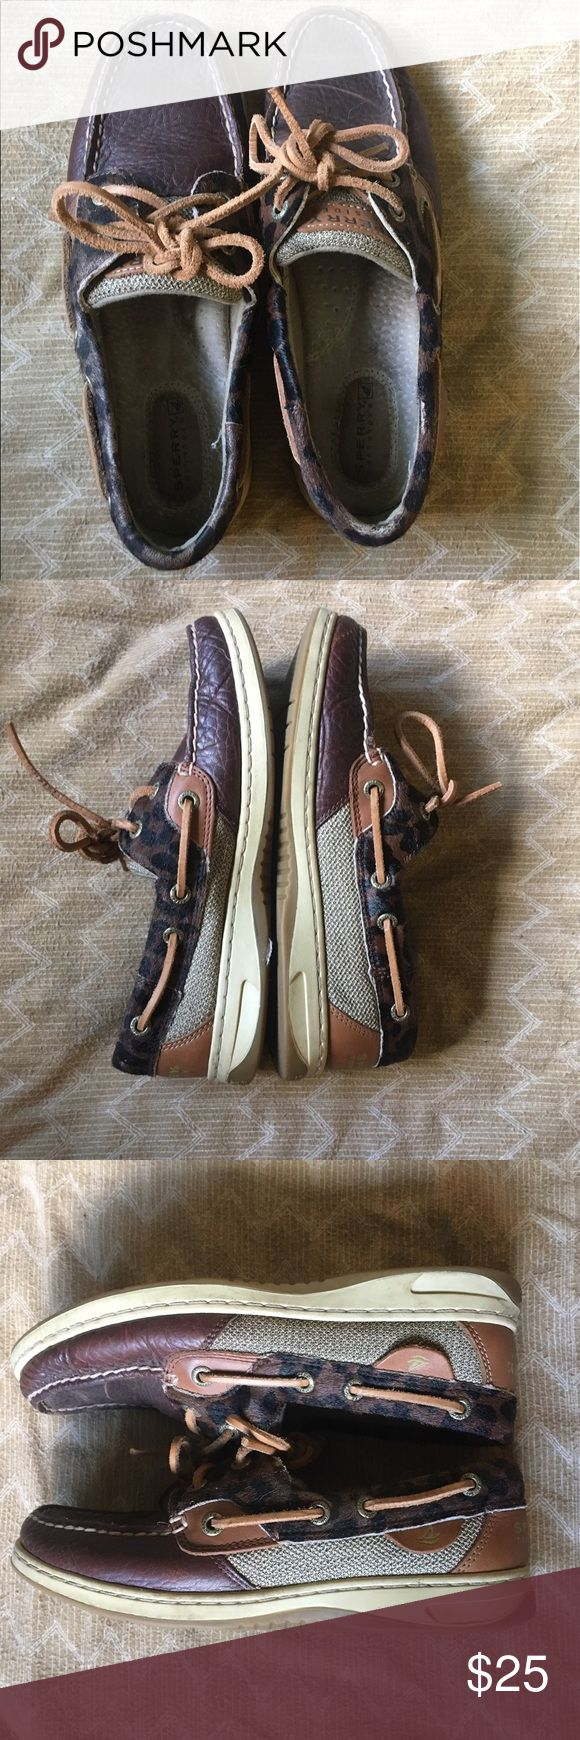 ‼️ SALE Sperry Women's Cheetah Print Sperry Women's Cheetah Print - Good condition. Would look great with some minor cleaning/polishing of the leather parts. Sperry Shoes